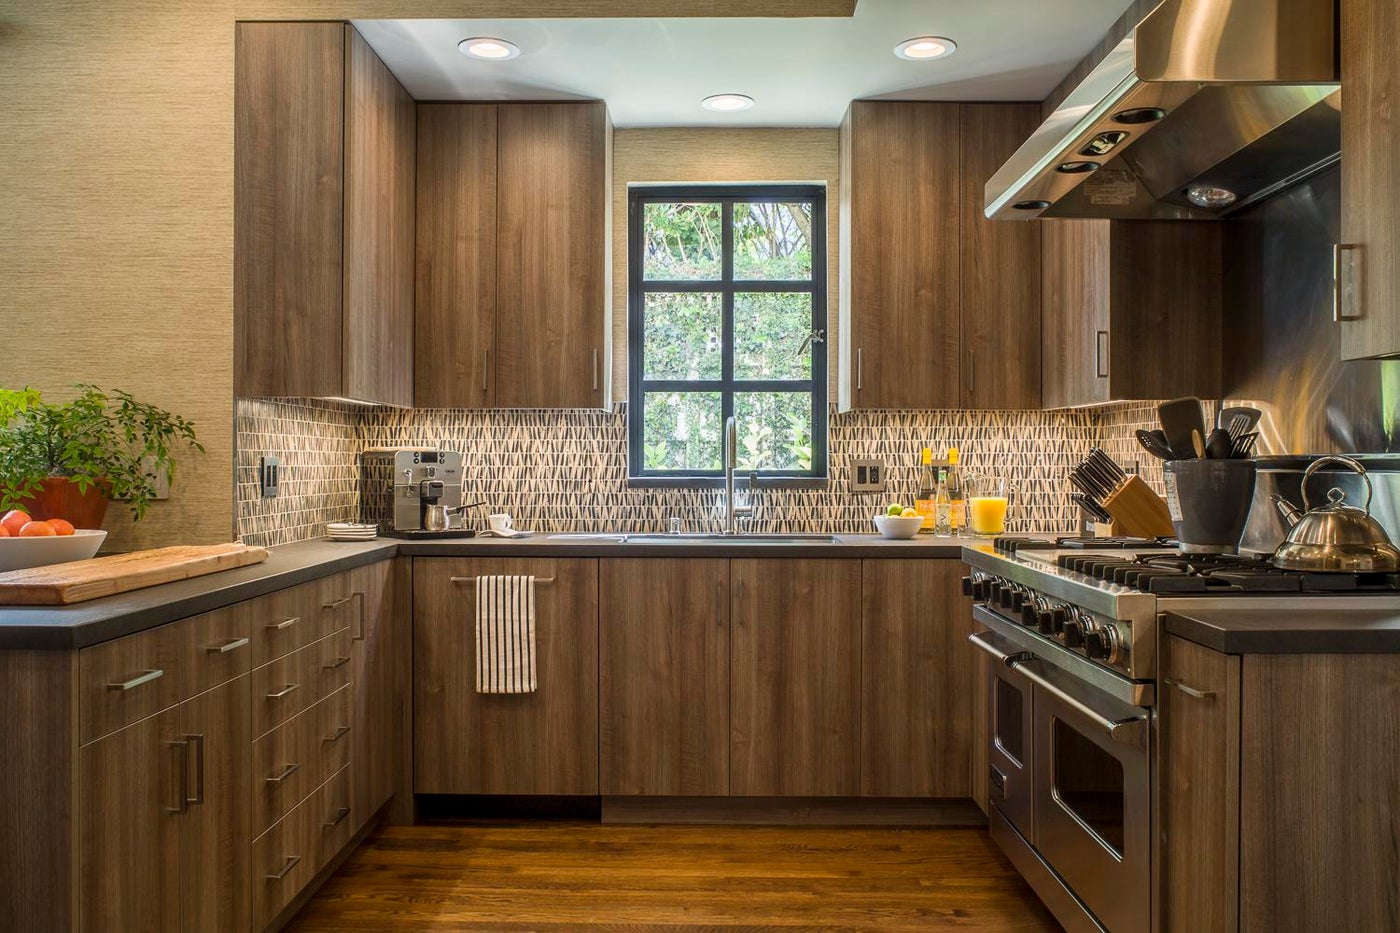 Russian Hill residence Kitchen